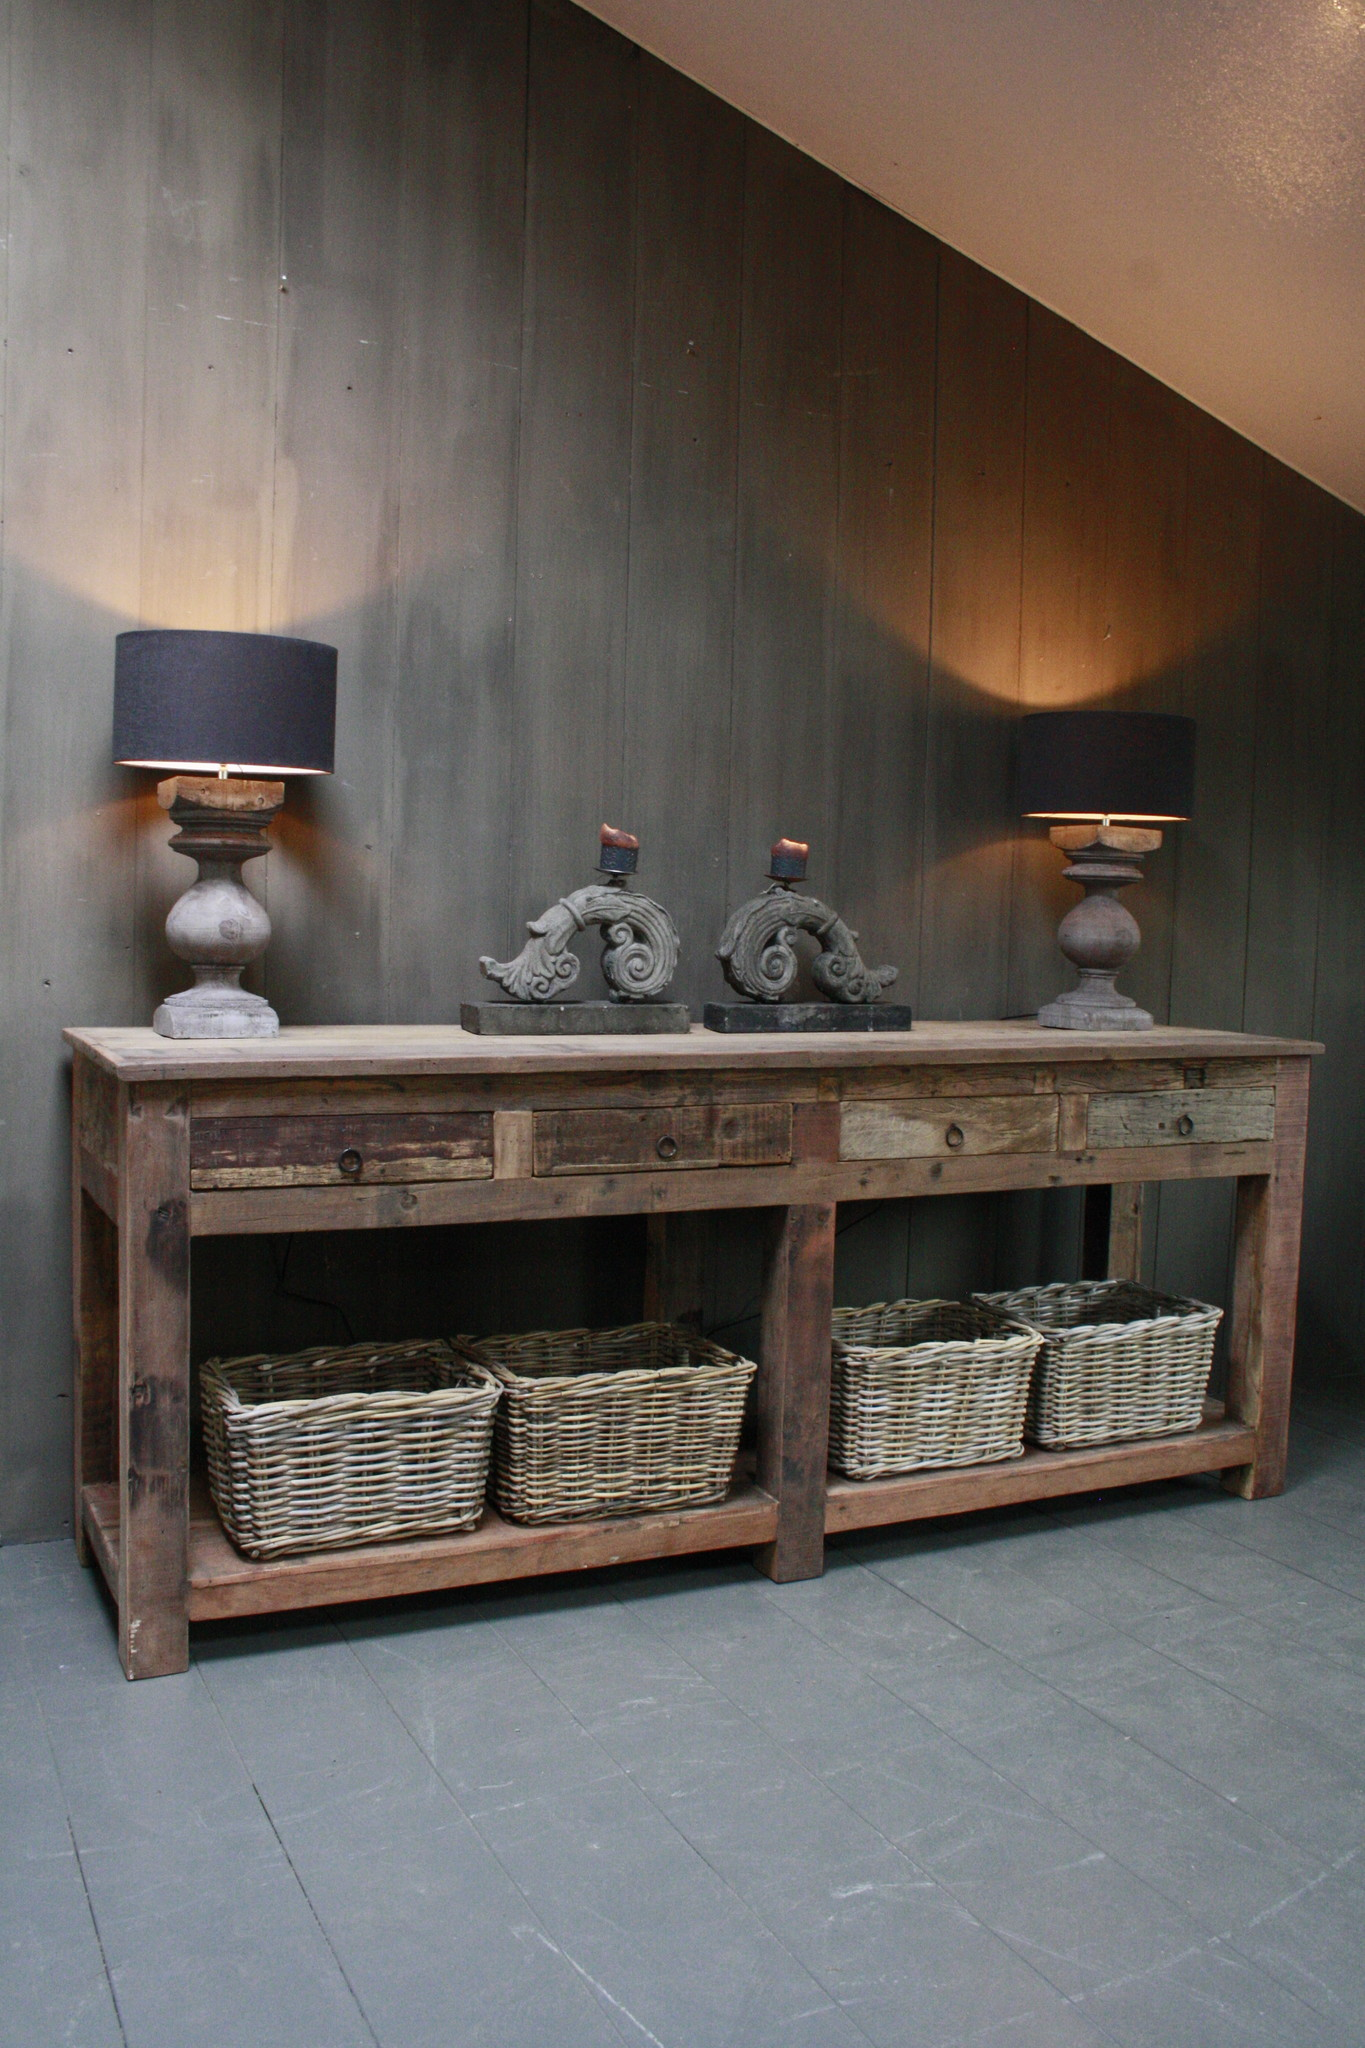 Sidetable Bassano oud hout met lades 226 x 60 x 90-1